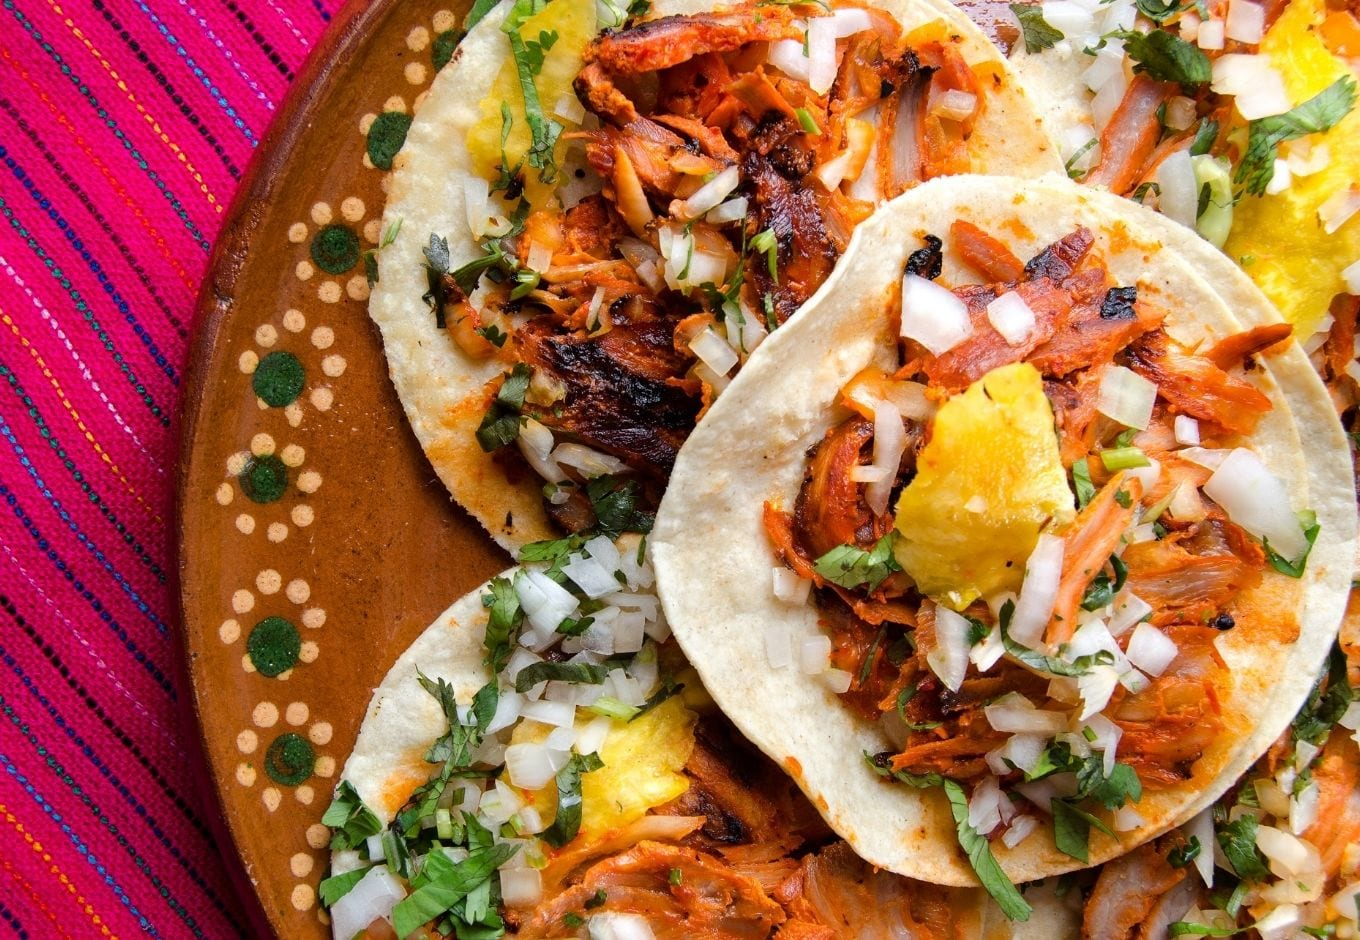 A typical Mexican plate filled with tacos al pastor.